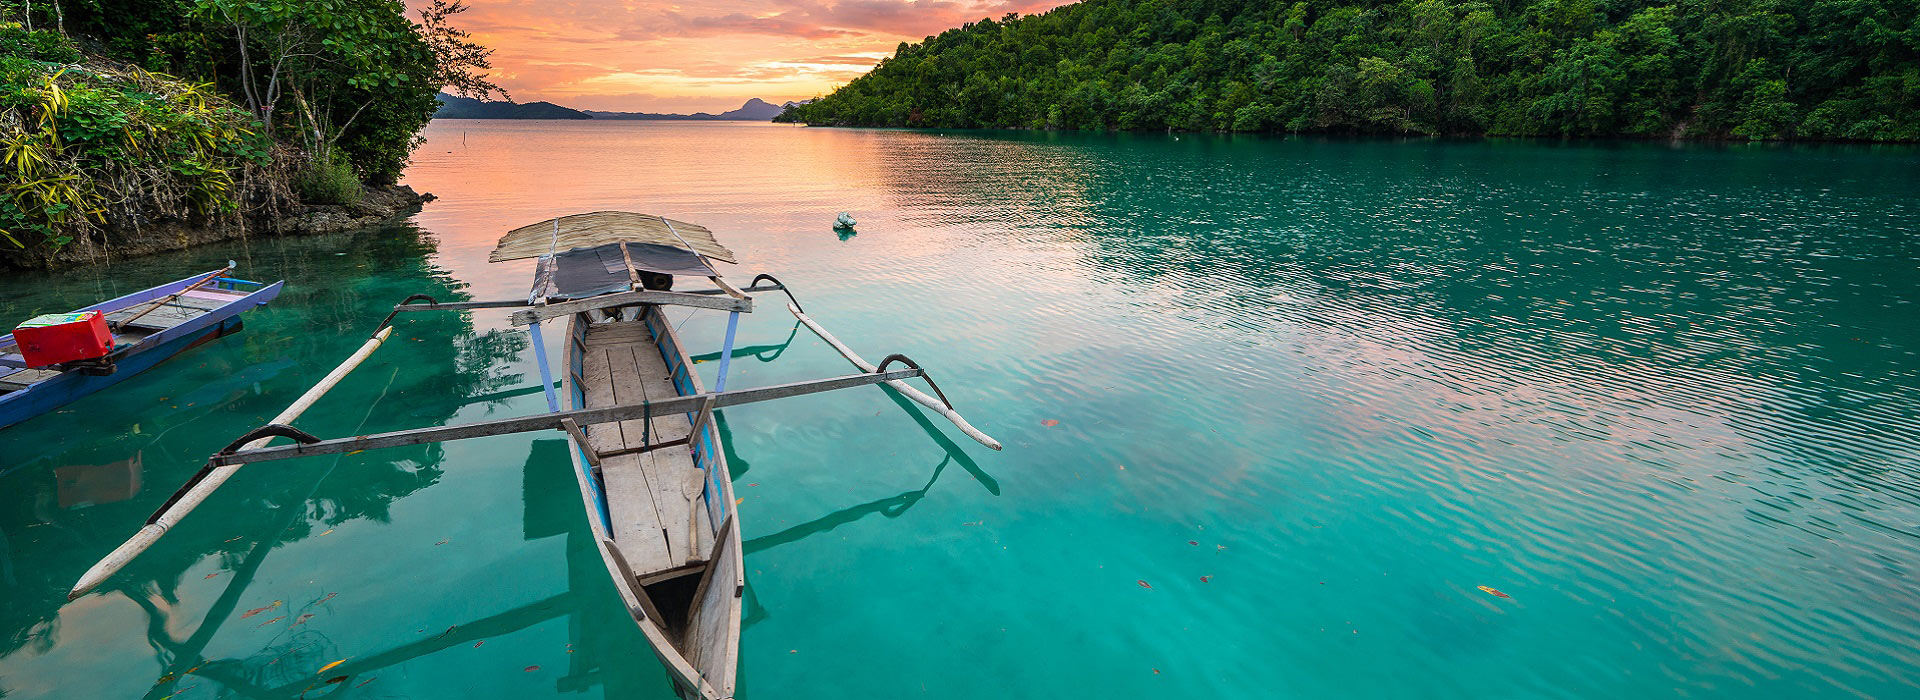 togean_islands_central_sulawesi